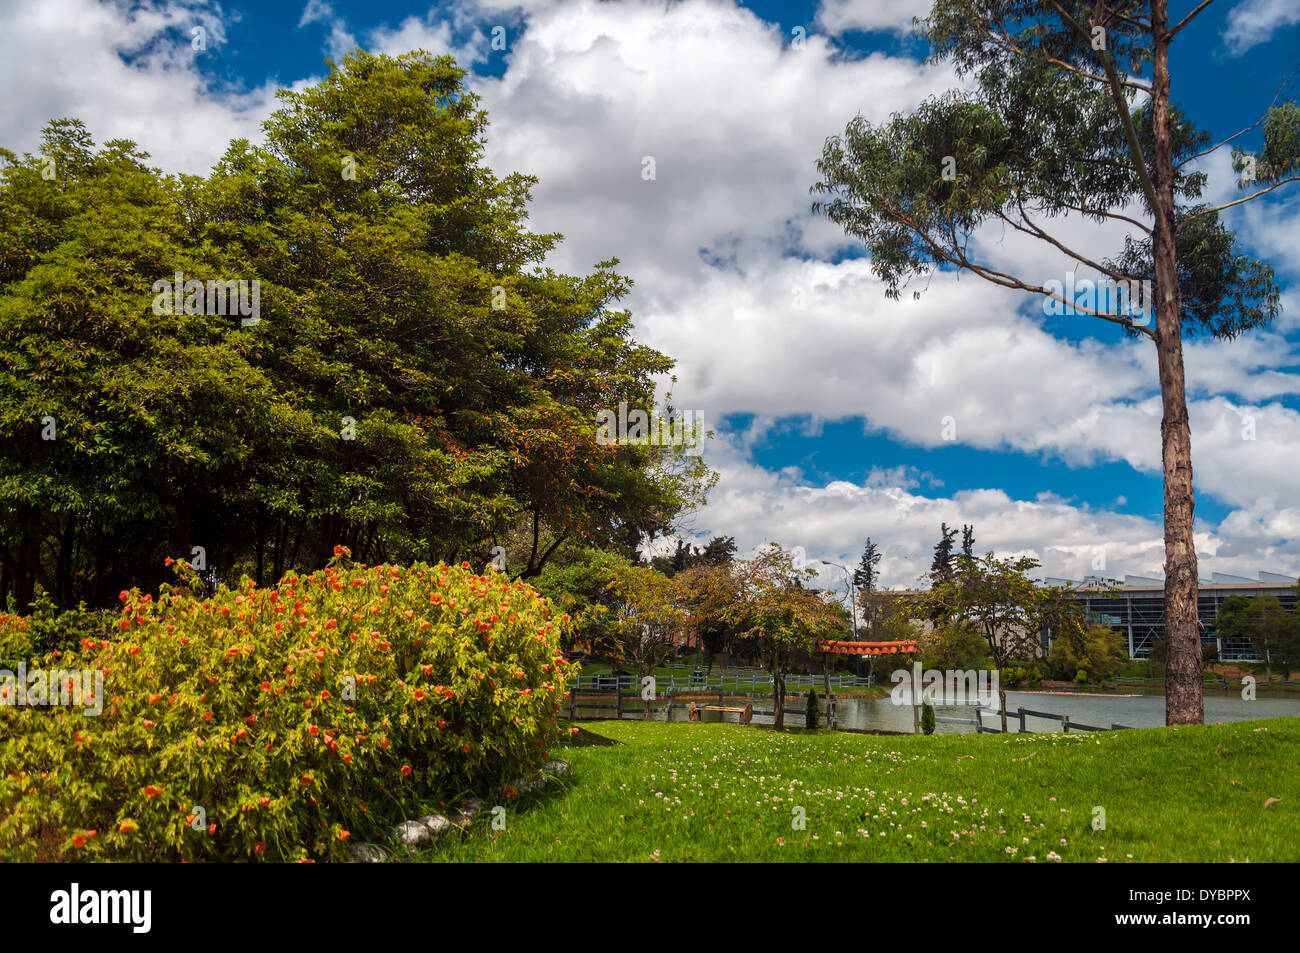 View of a lush green park and lagoon - Stock Image